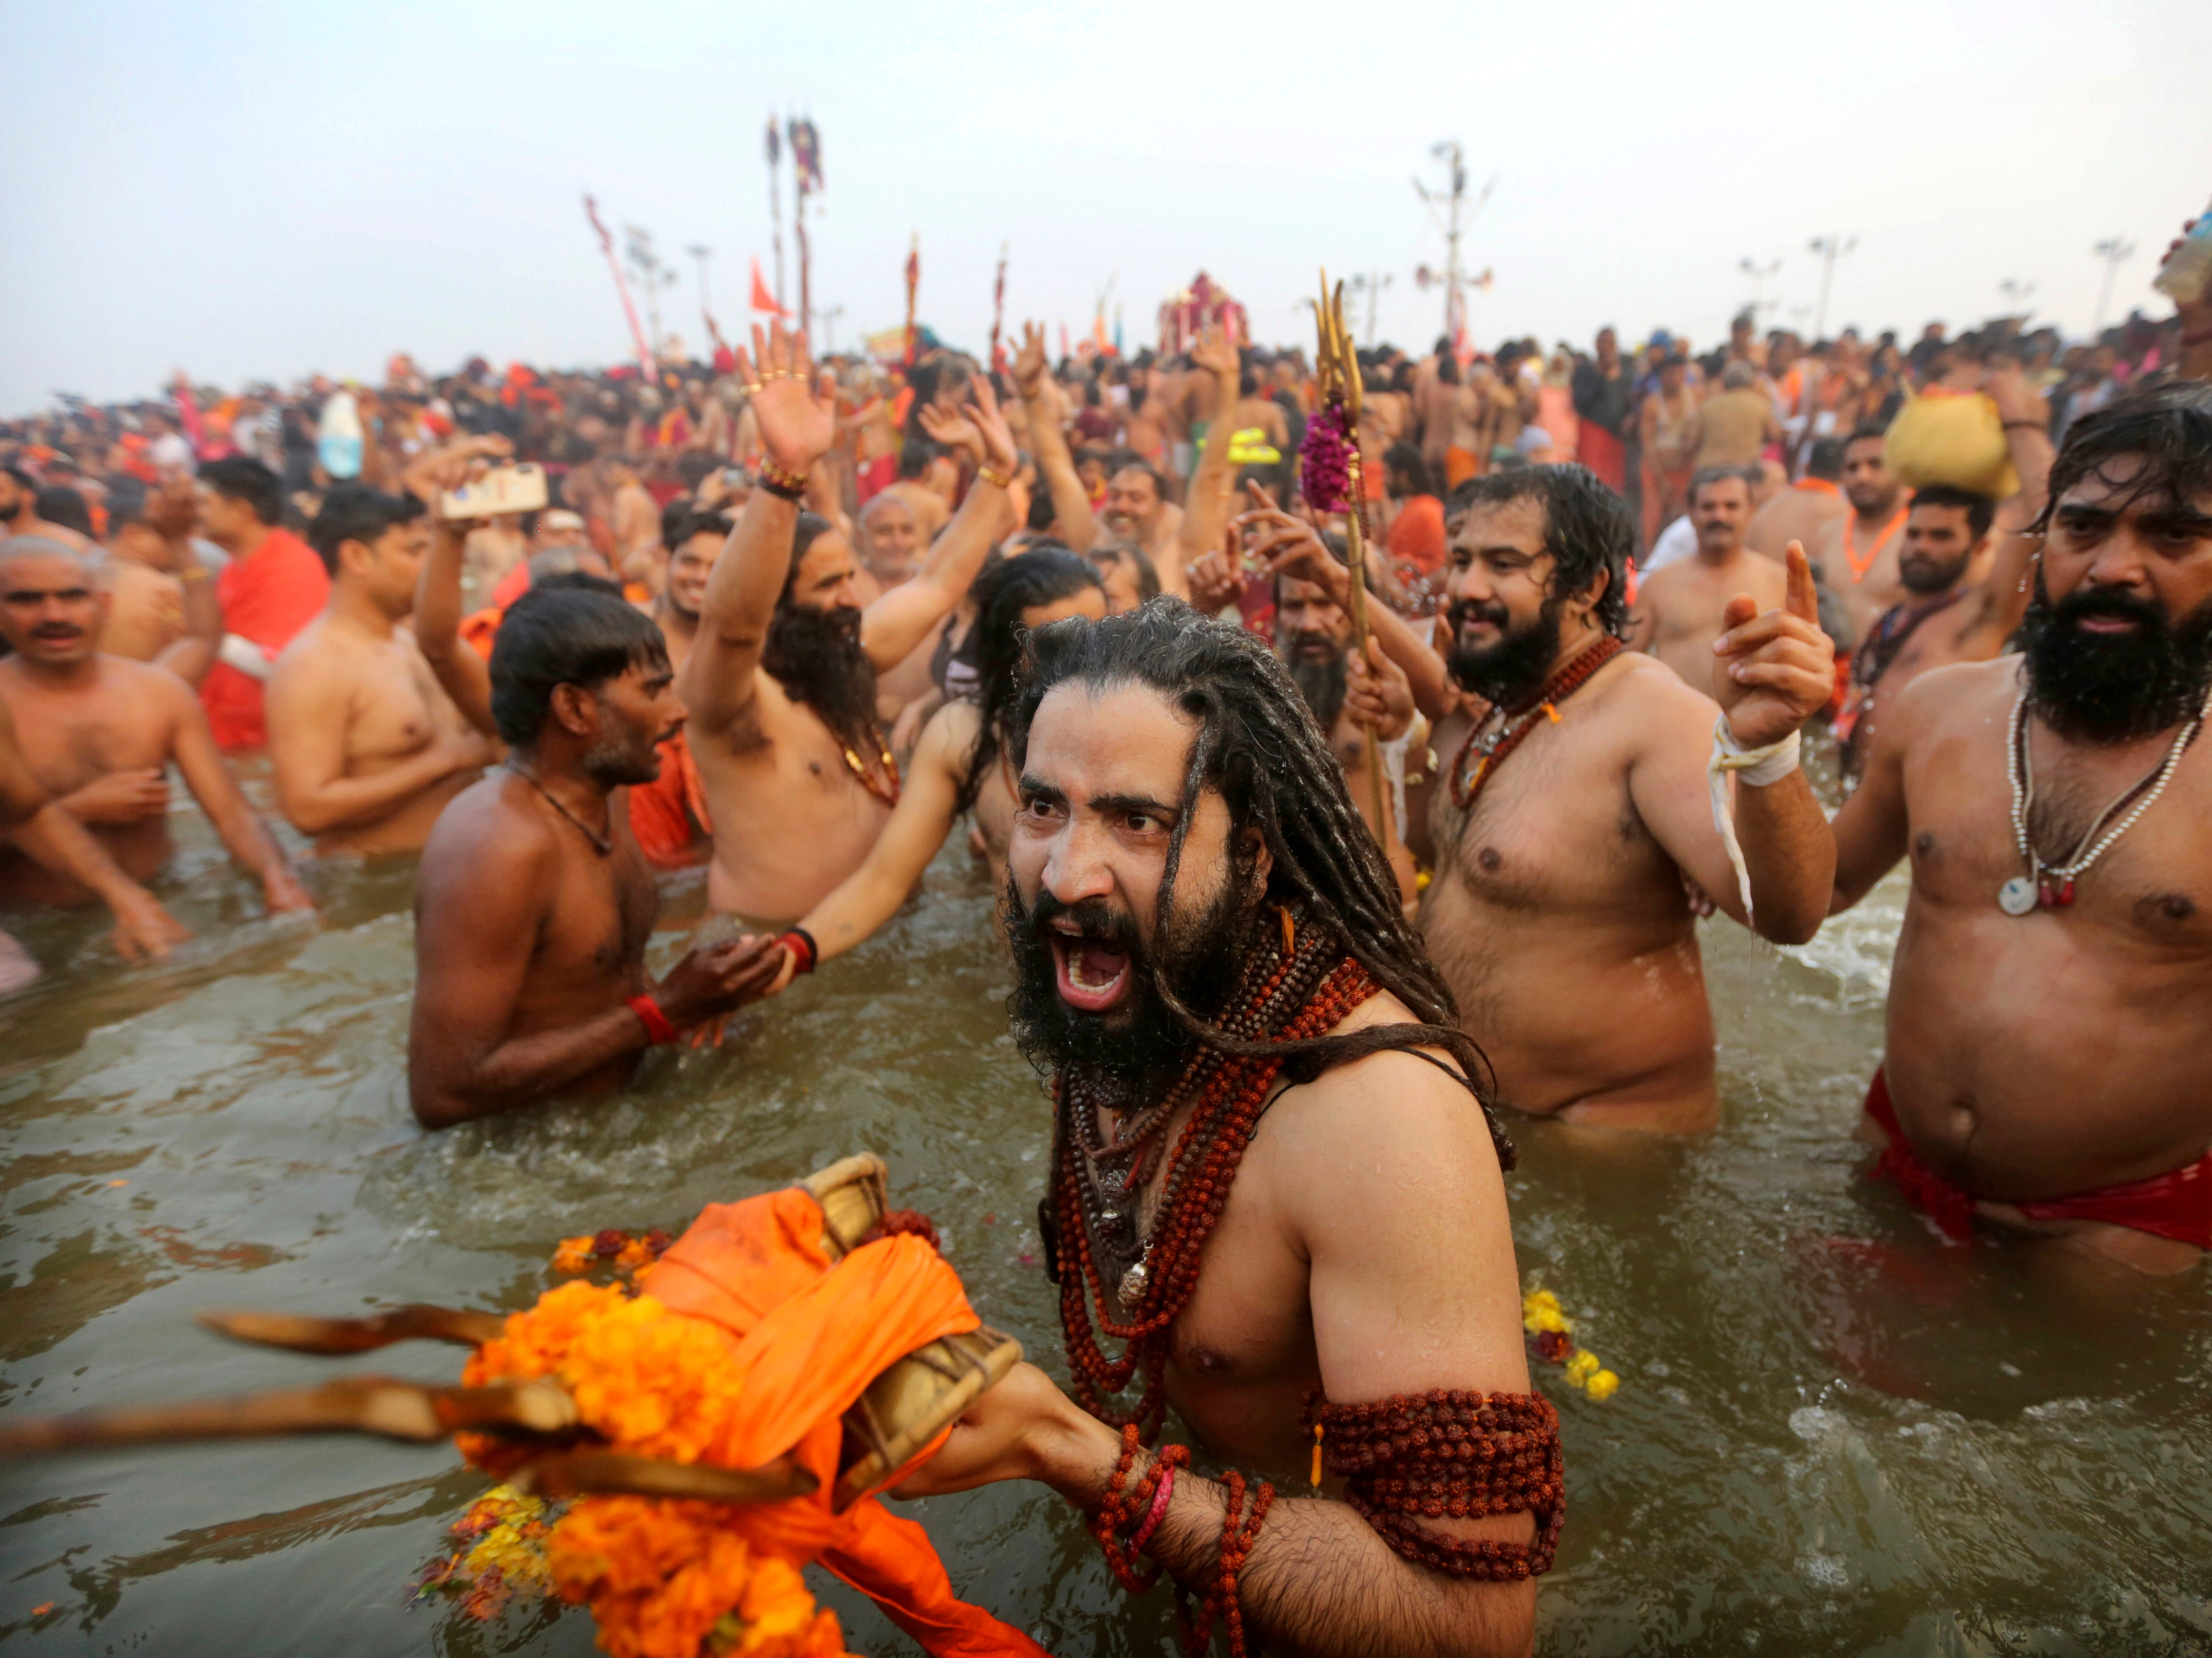 Naga Sadhus or Naked Hindu holy men shout slogans and take dips at Sangam, the confluence of three sacred rivers  the Yamuna, the Ganges and the mythical Saraswati, on Mauni Amavsya or the new moon day, the most auspicious day during the Kumbh Mela or the Pitcher Festival, in Prayagraj, Uttar Pradesh state, India, Monday, Feb. 4, 2019. The Kumbh Mela is a series of ritual baths by Hindu sadhus, or holy men, and other pilgrims at Sangam that dates back to at least medieval times. Pilgrims bathe in the river believing it cleanses them of their sins and ends their process of reincarnation. The event, which UNESCO added to its list of intangible human heritage in 2017, is the largest congregation of pilgrims on earth. Some 150 million people are expected to attend this year's Kumbh, which runs through early March.